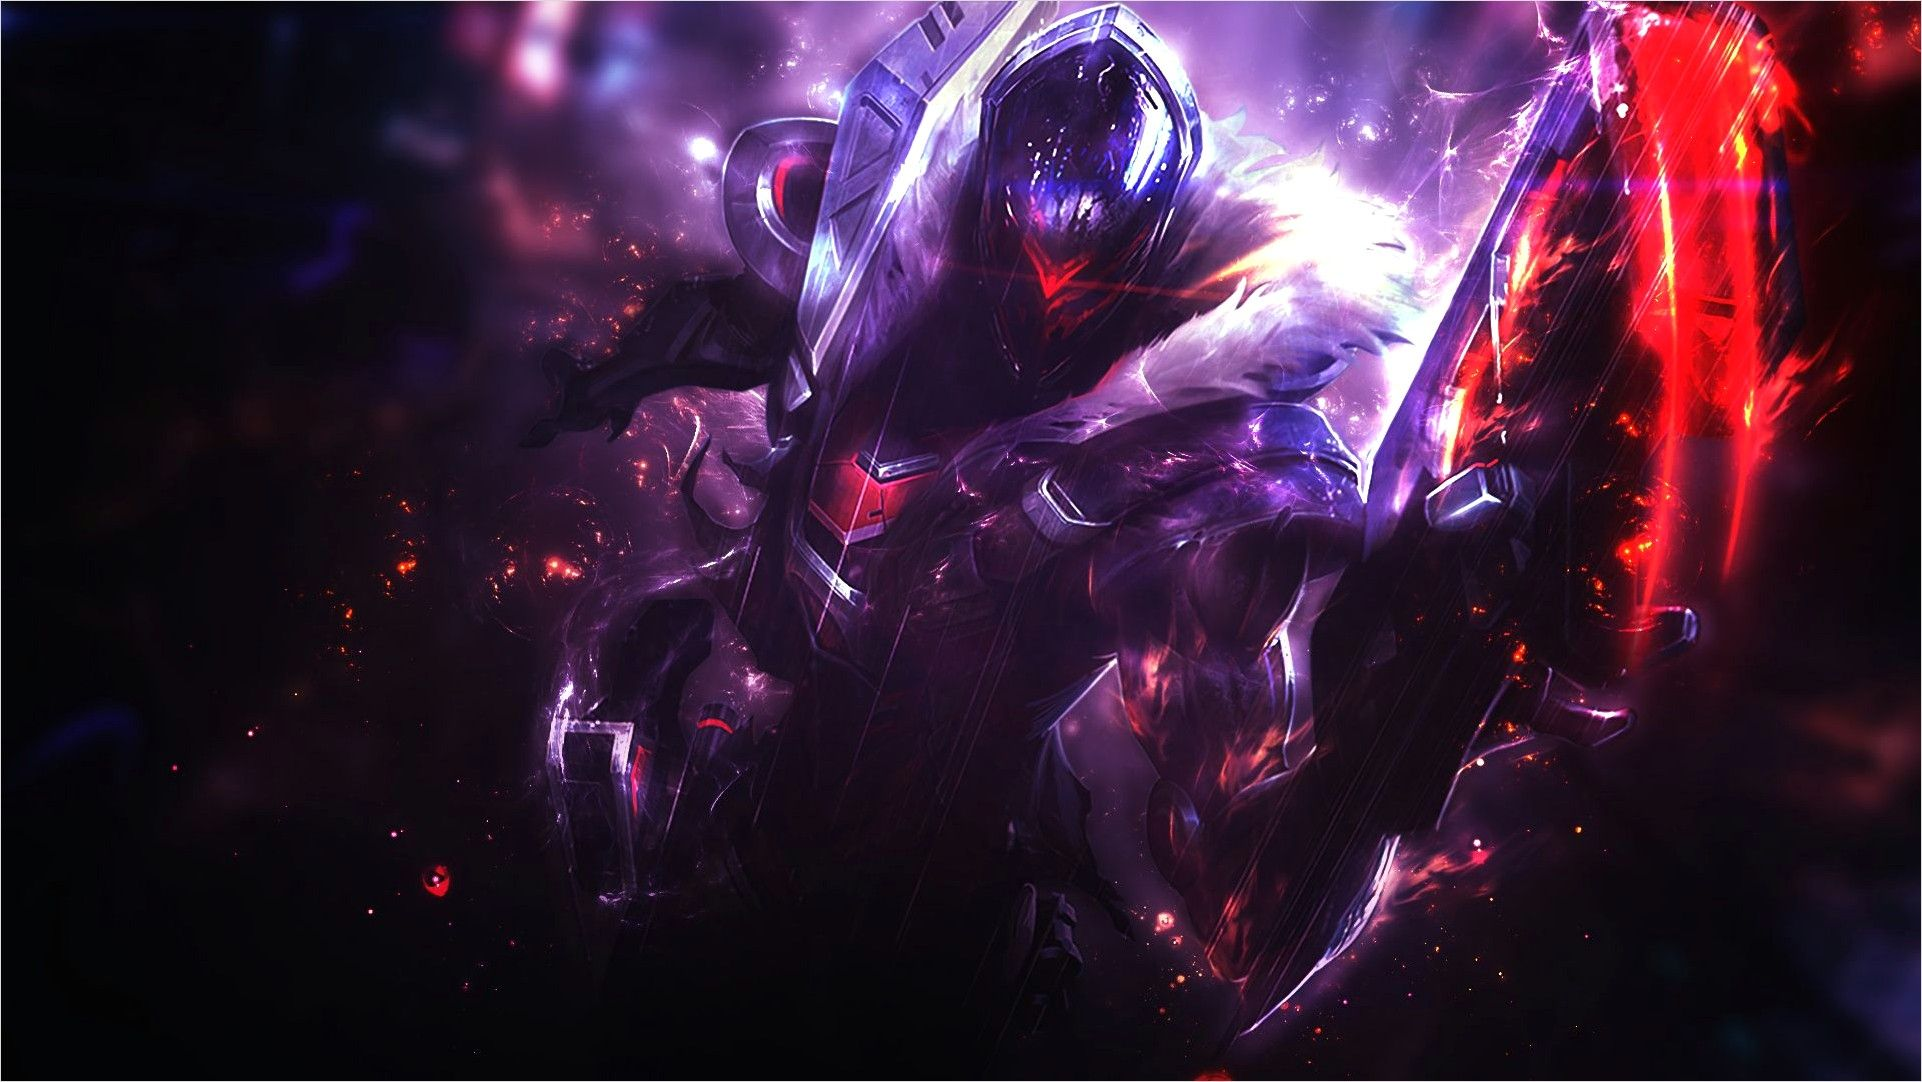 4k League Of Legeends Project Jhin Wallpaper In 2020 League Of Legends League Of Legends Jhin Hd Wallpaper